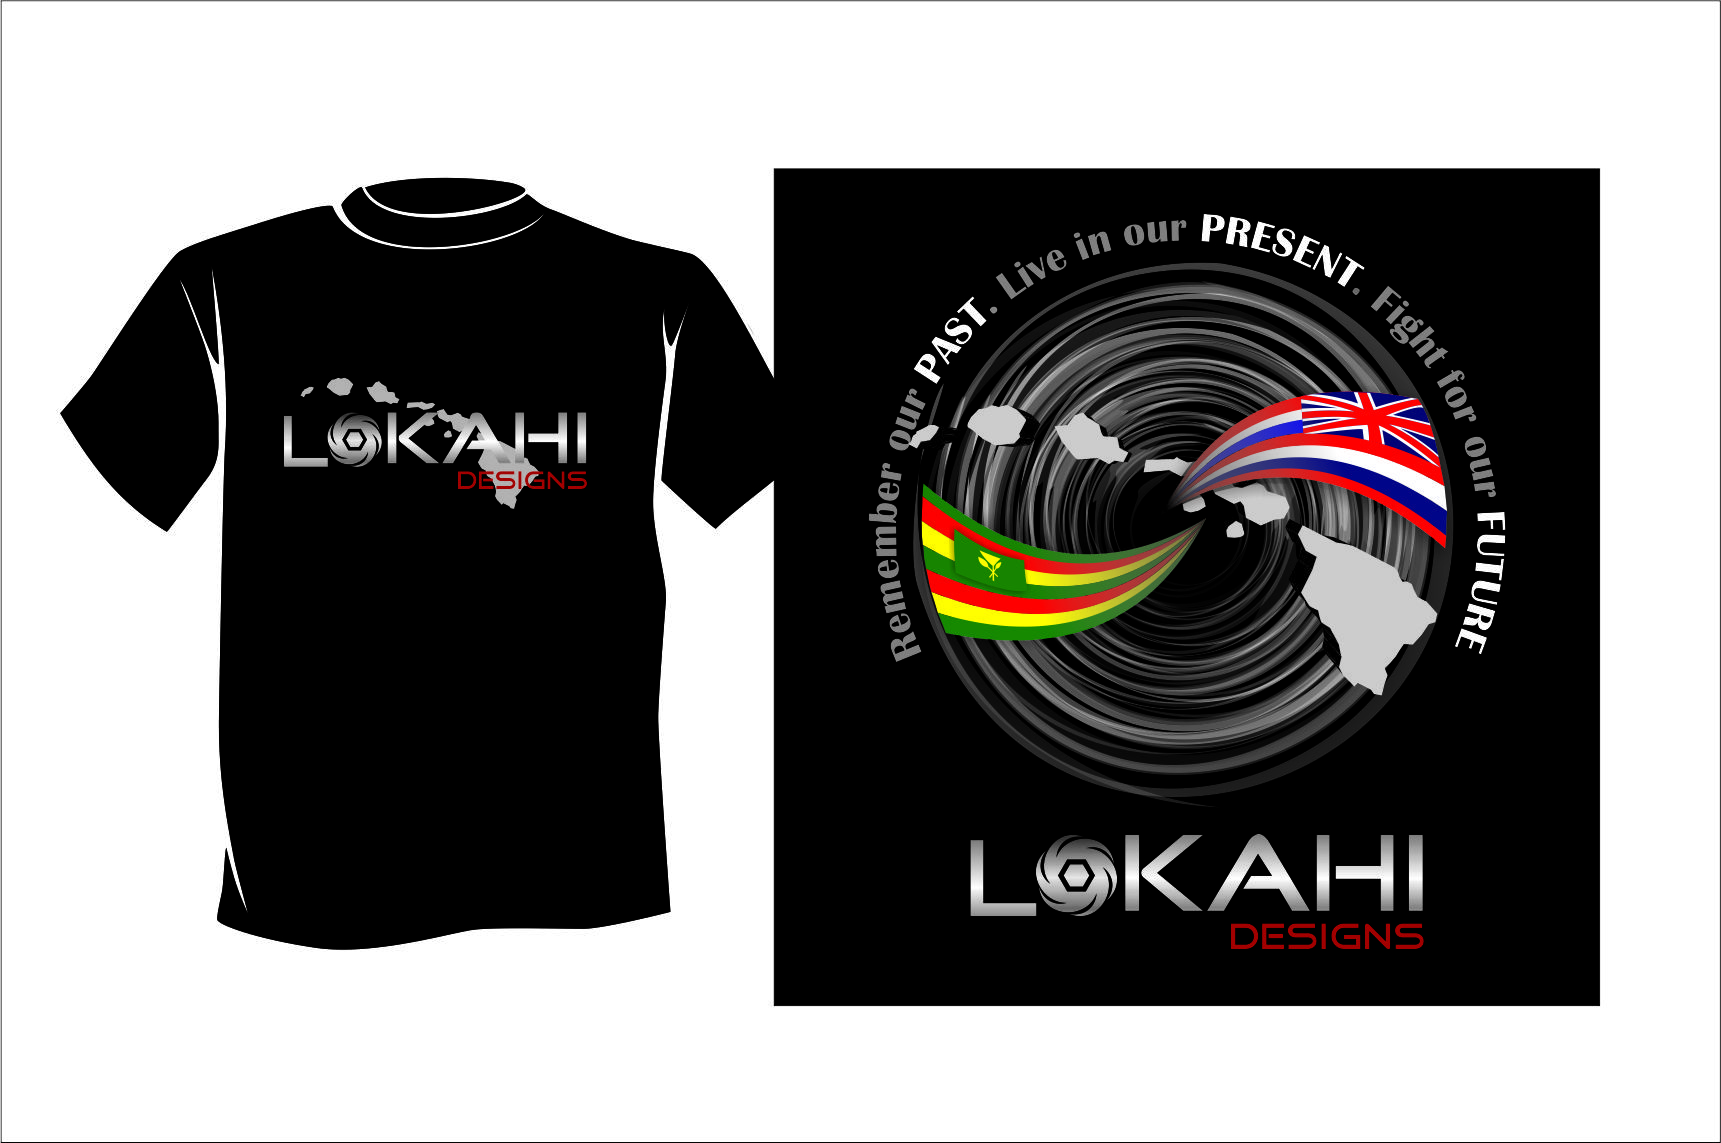 Clothing Design by Agus Martoyo - Entry No. 111 in the Clothing Design Contest Creative Clothing Design for LOKAHI designs.